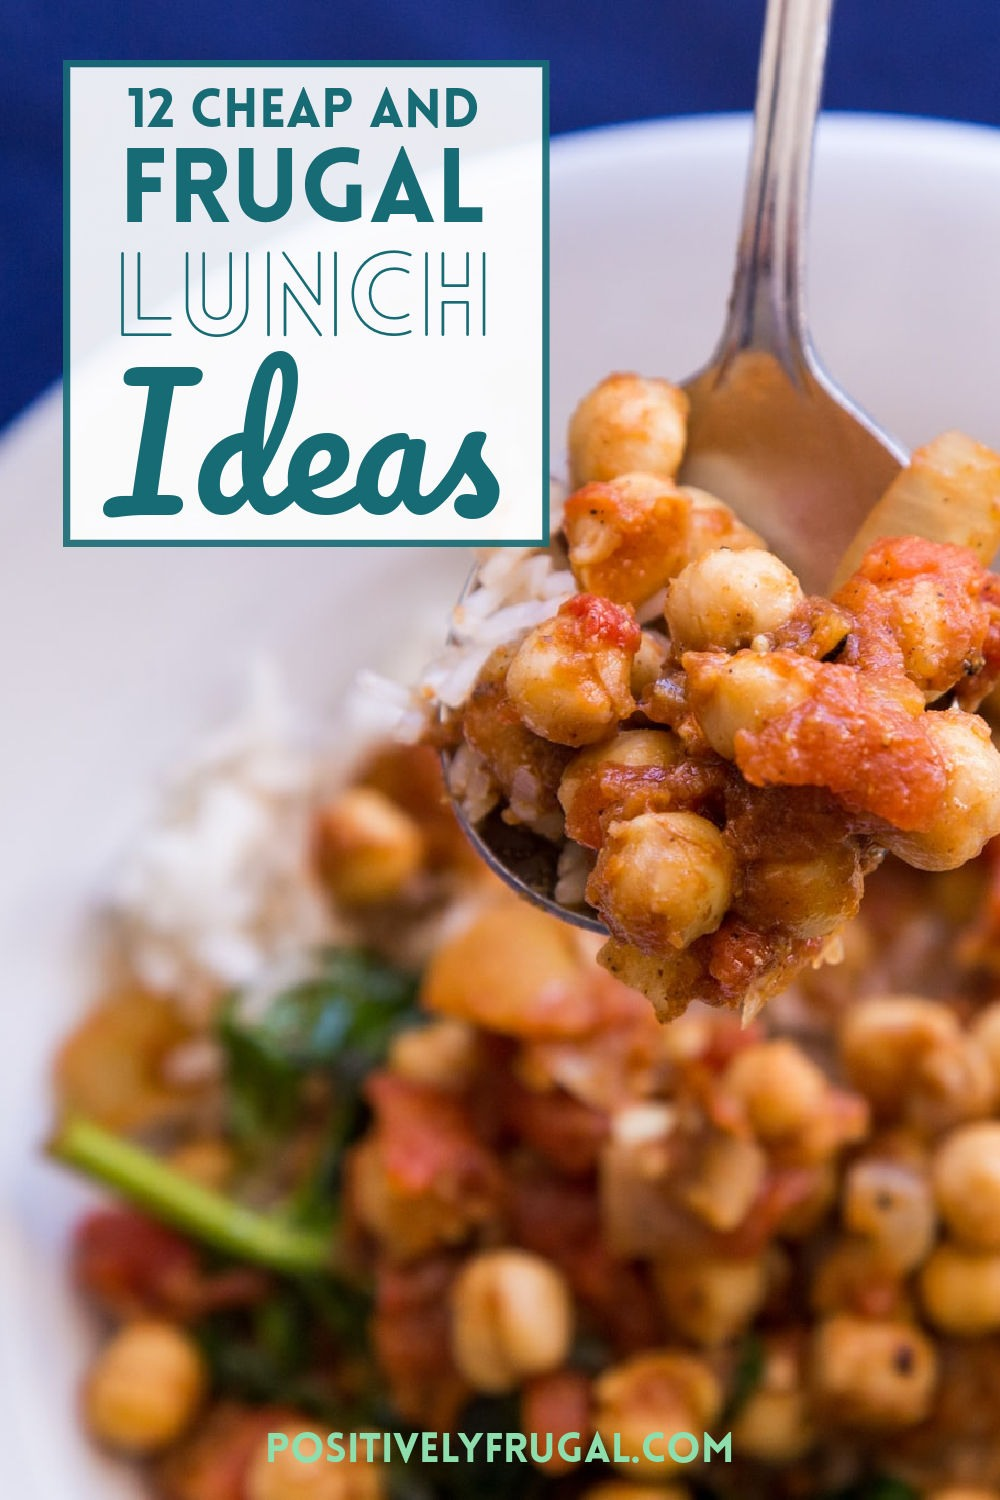 Cheap and Frugal Lunch by PositivelyFrugal.com